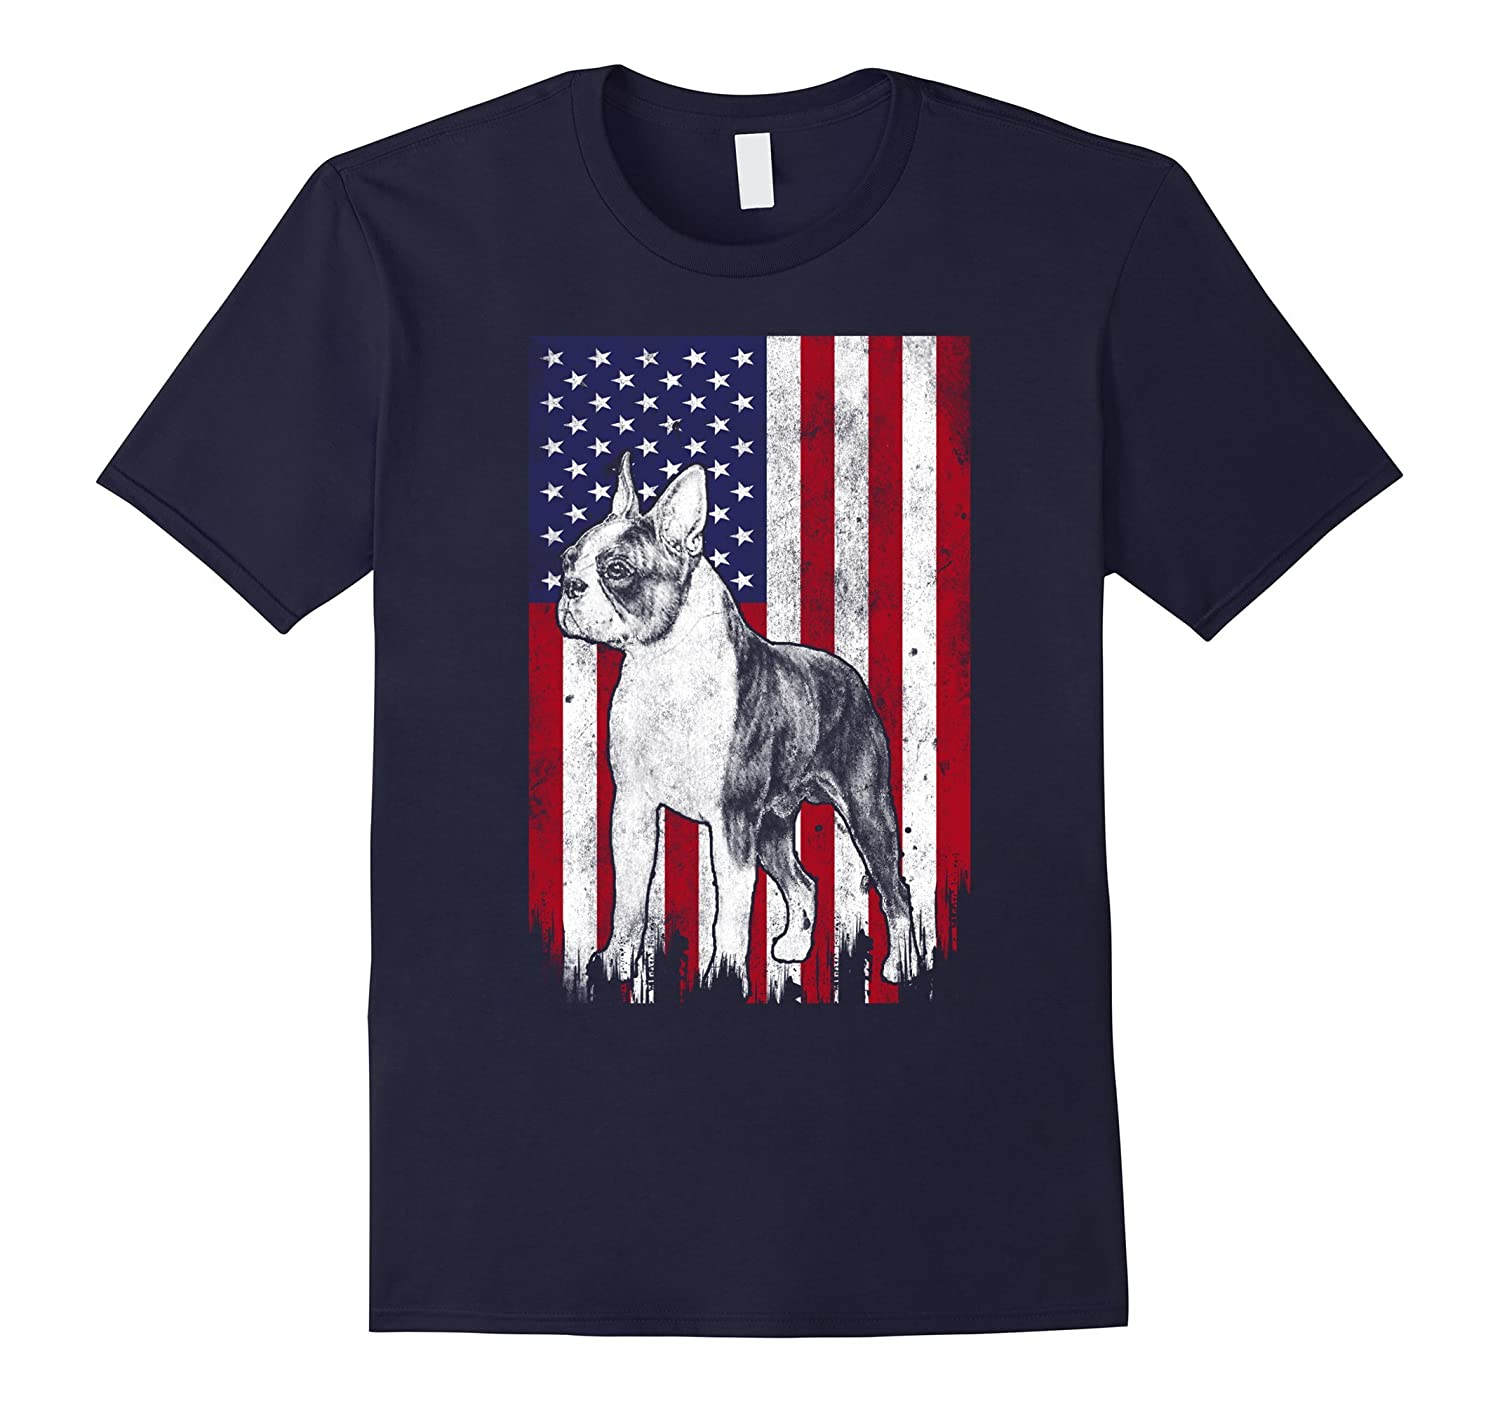 Boston Terrier American Patriot t shirt US Flag Dog shirt-PL